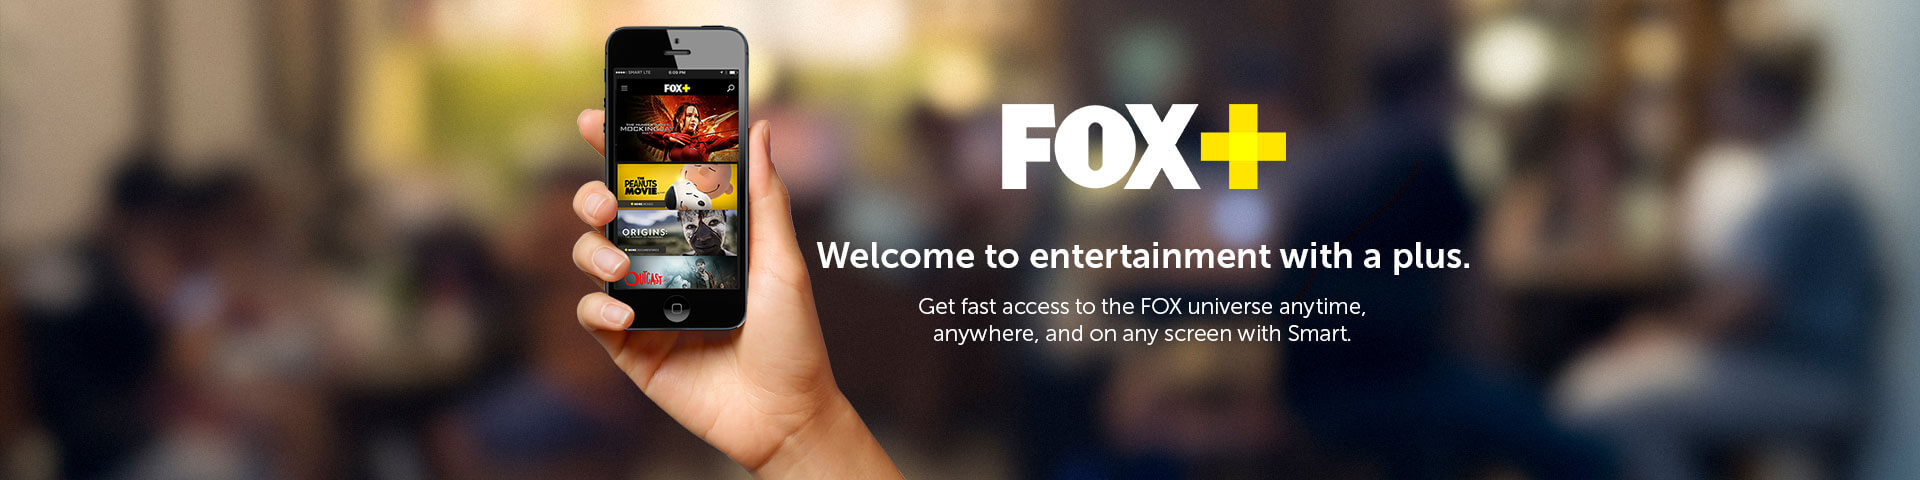 smart-pages-fox-web-banner-updated1